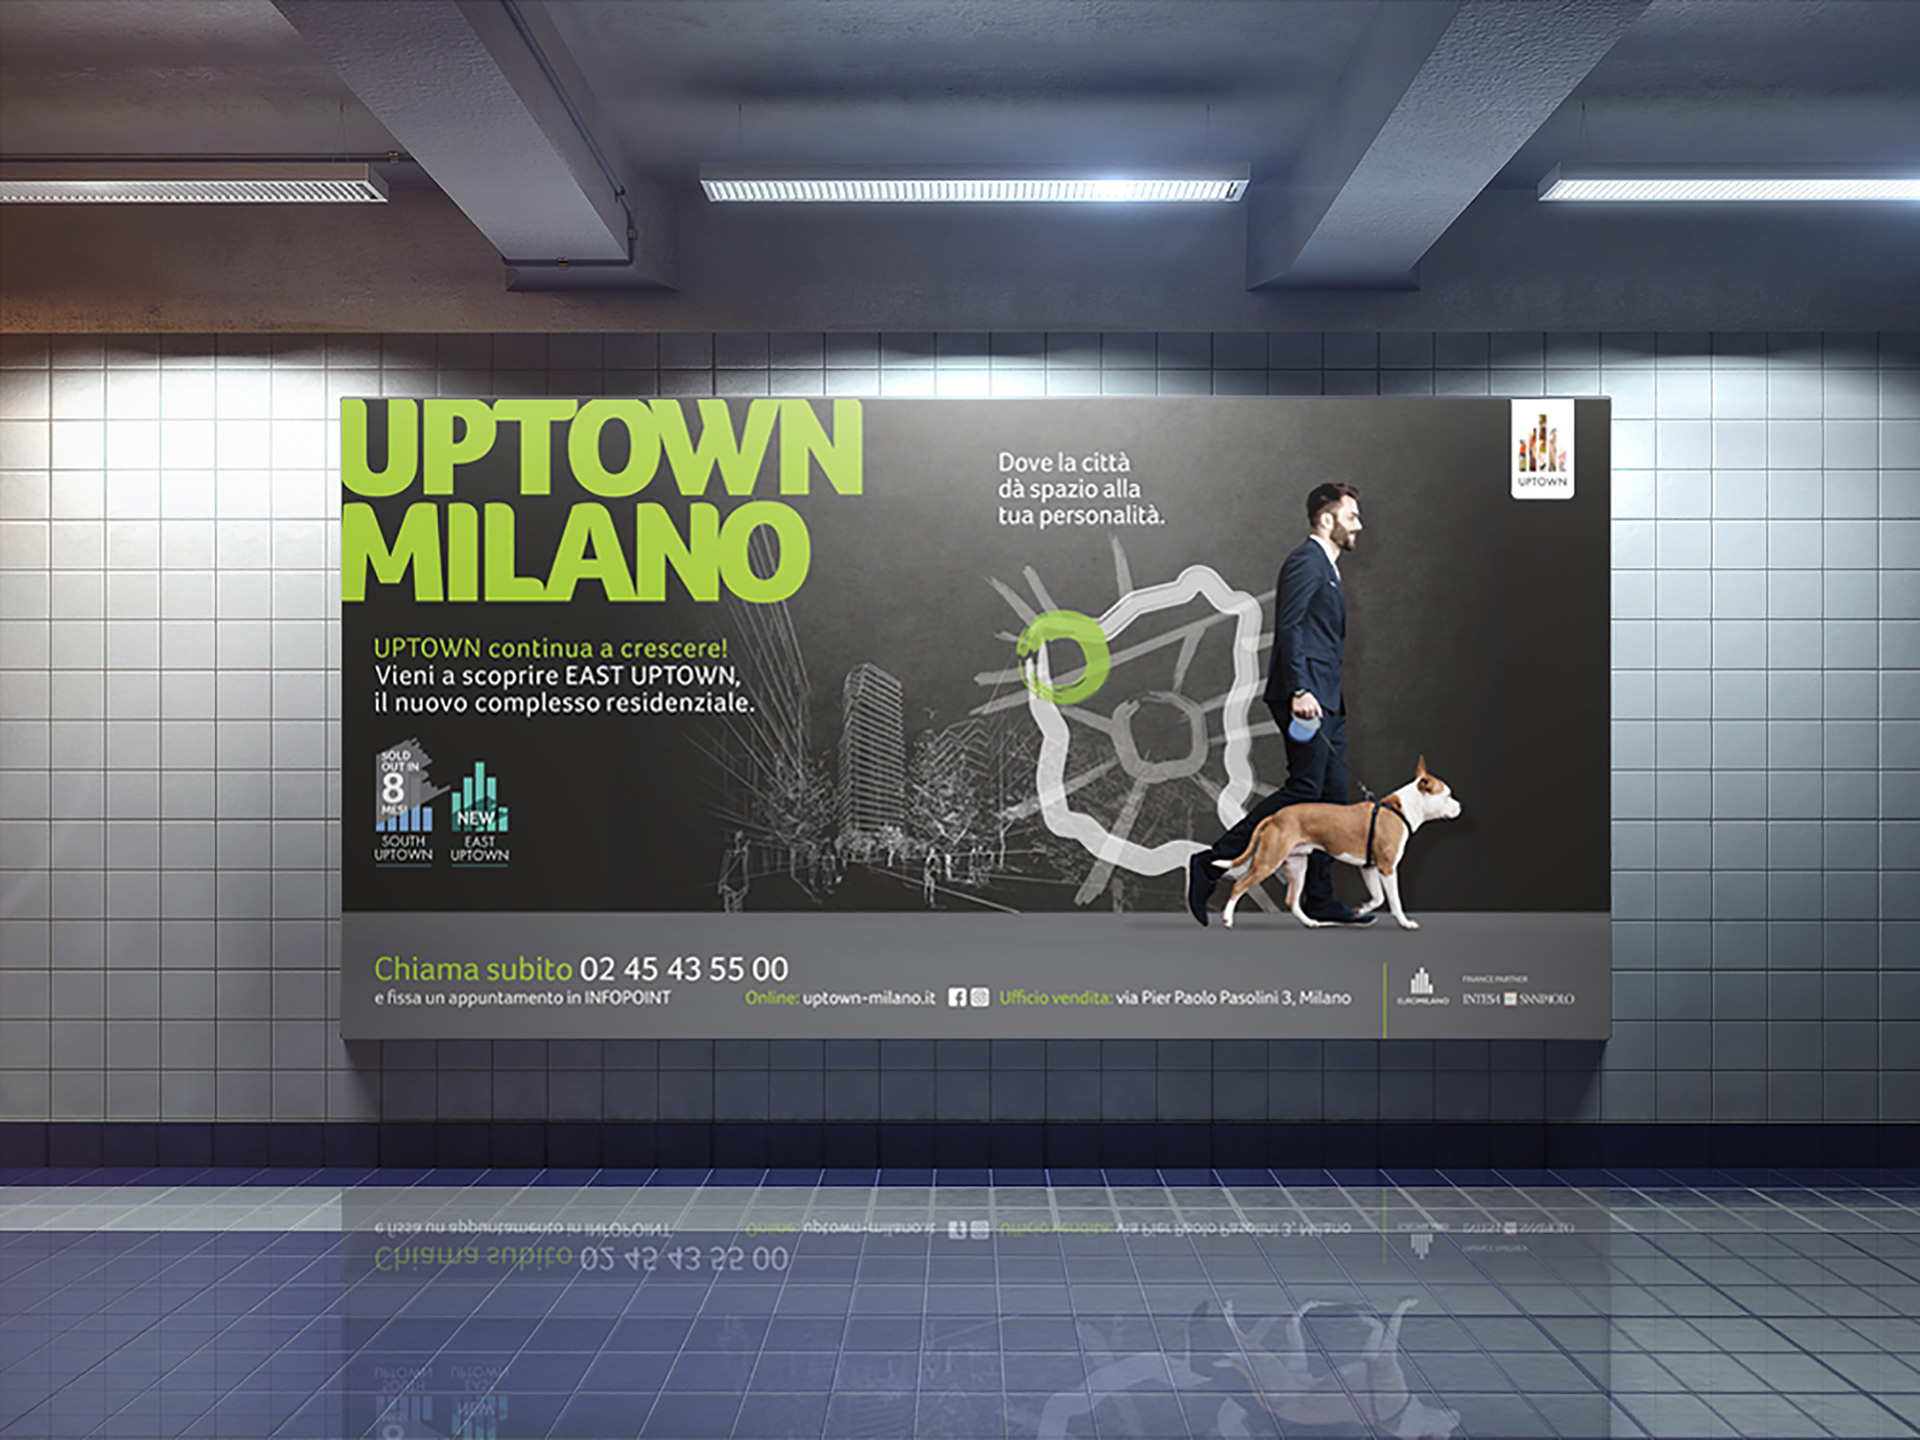 Paul Thompson Uptown Milano Adv Campaign